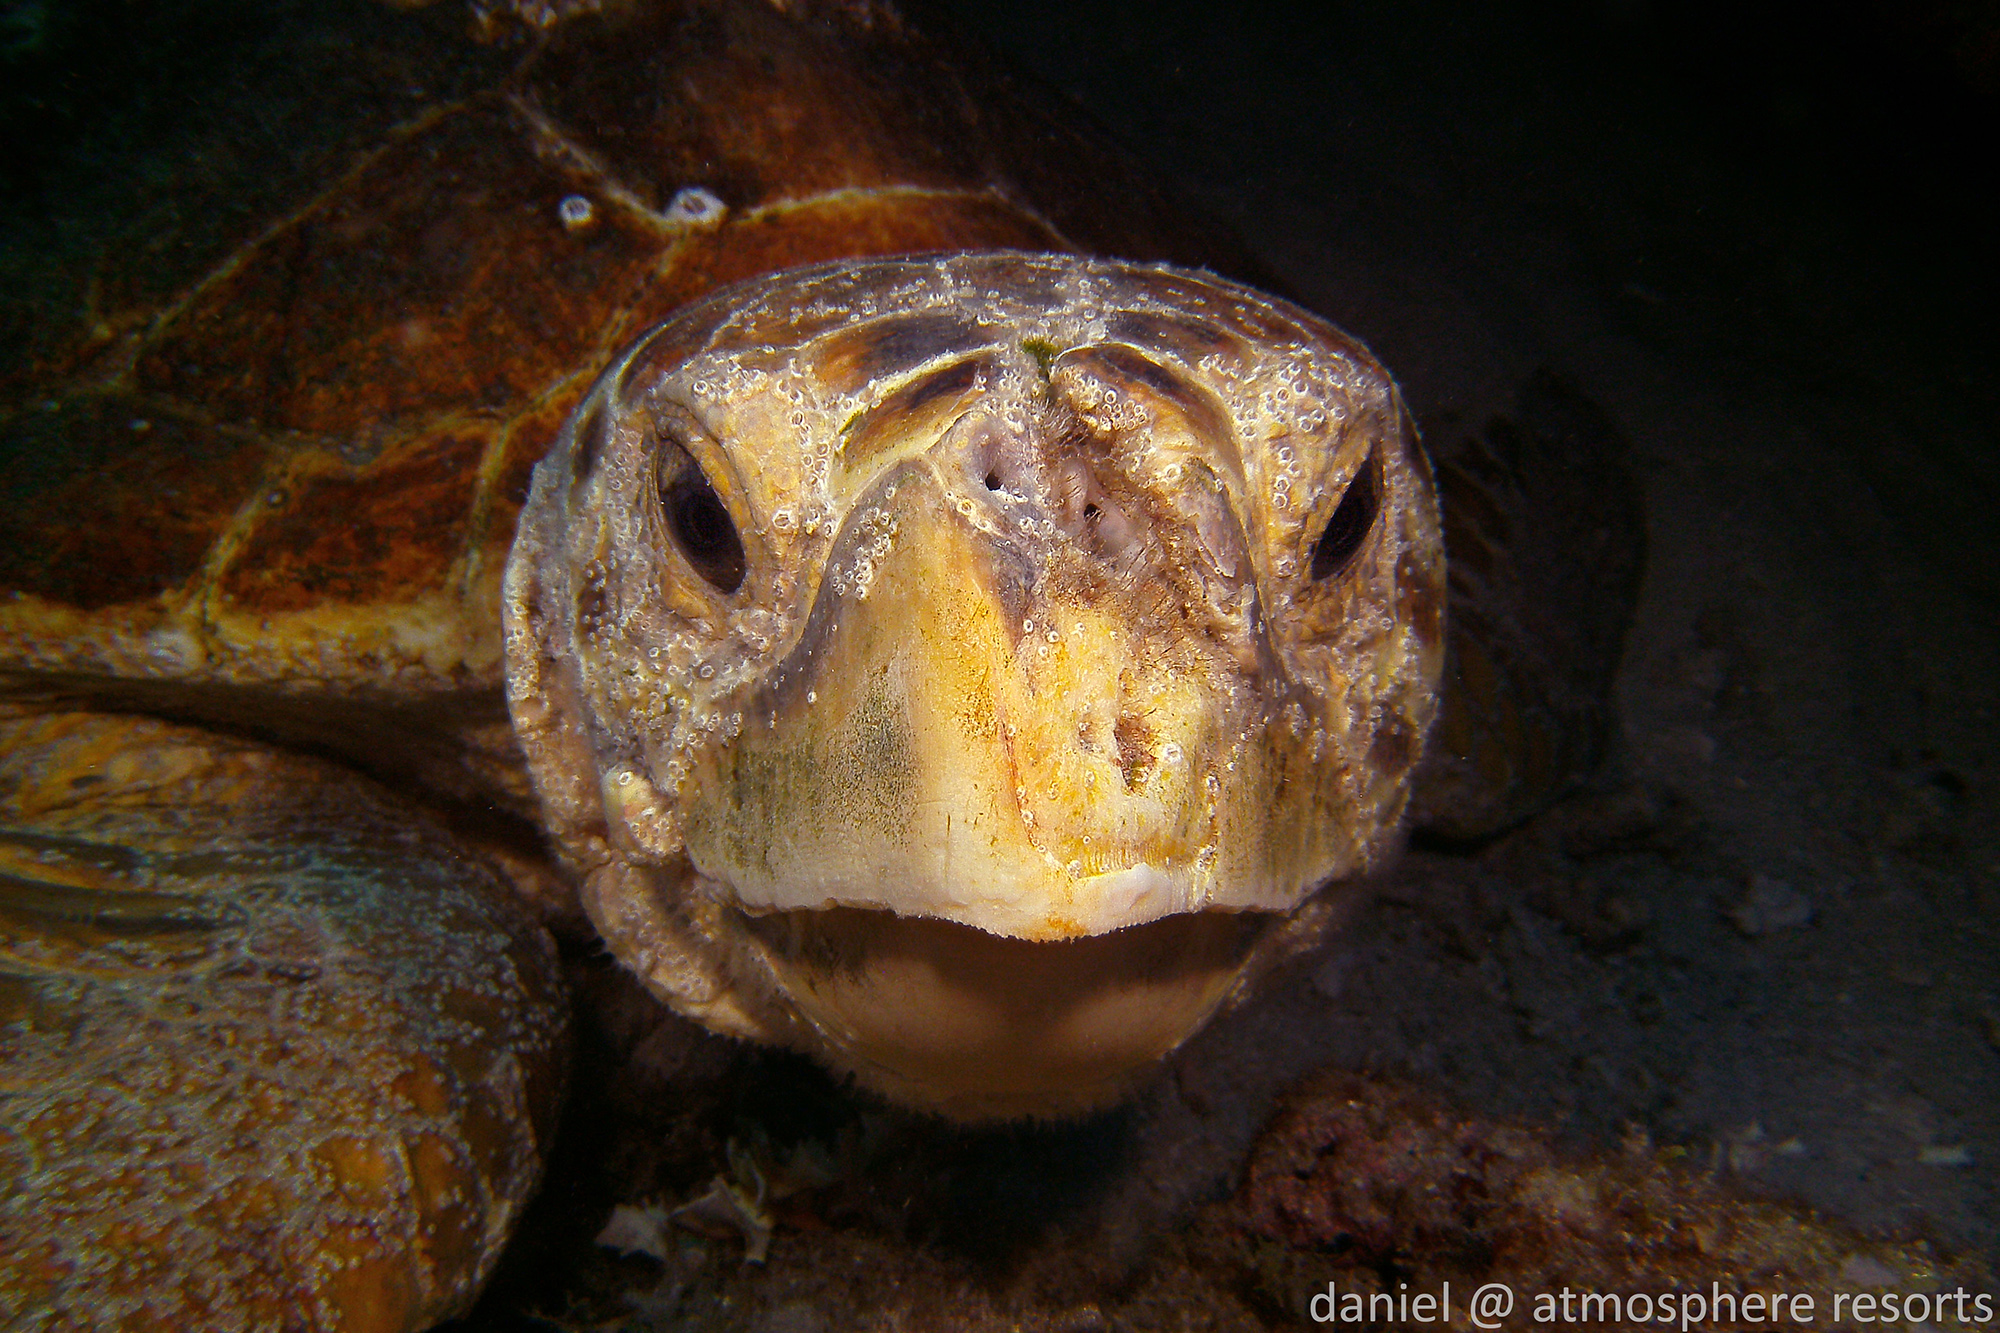 Loggerhead sea turtle from Florida by Daniel Geary